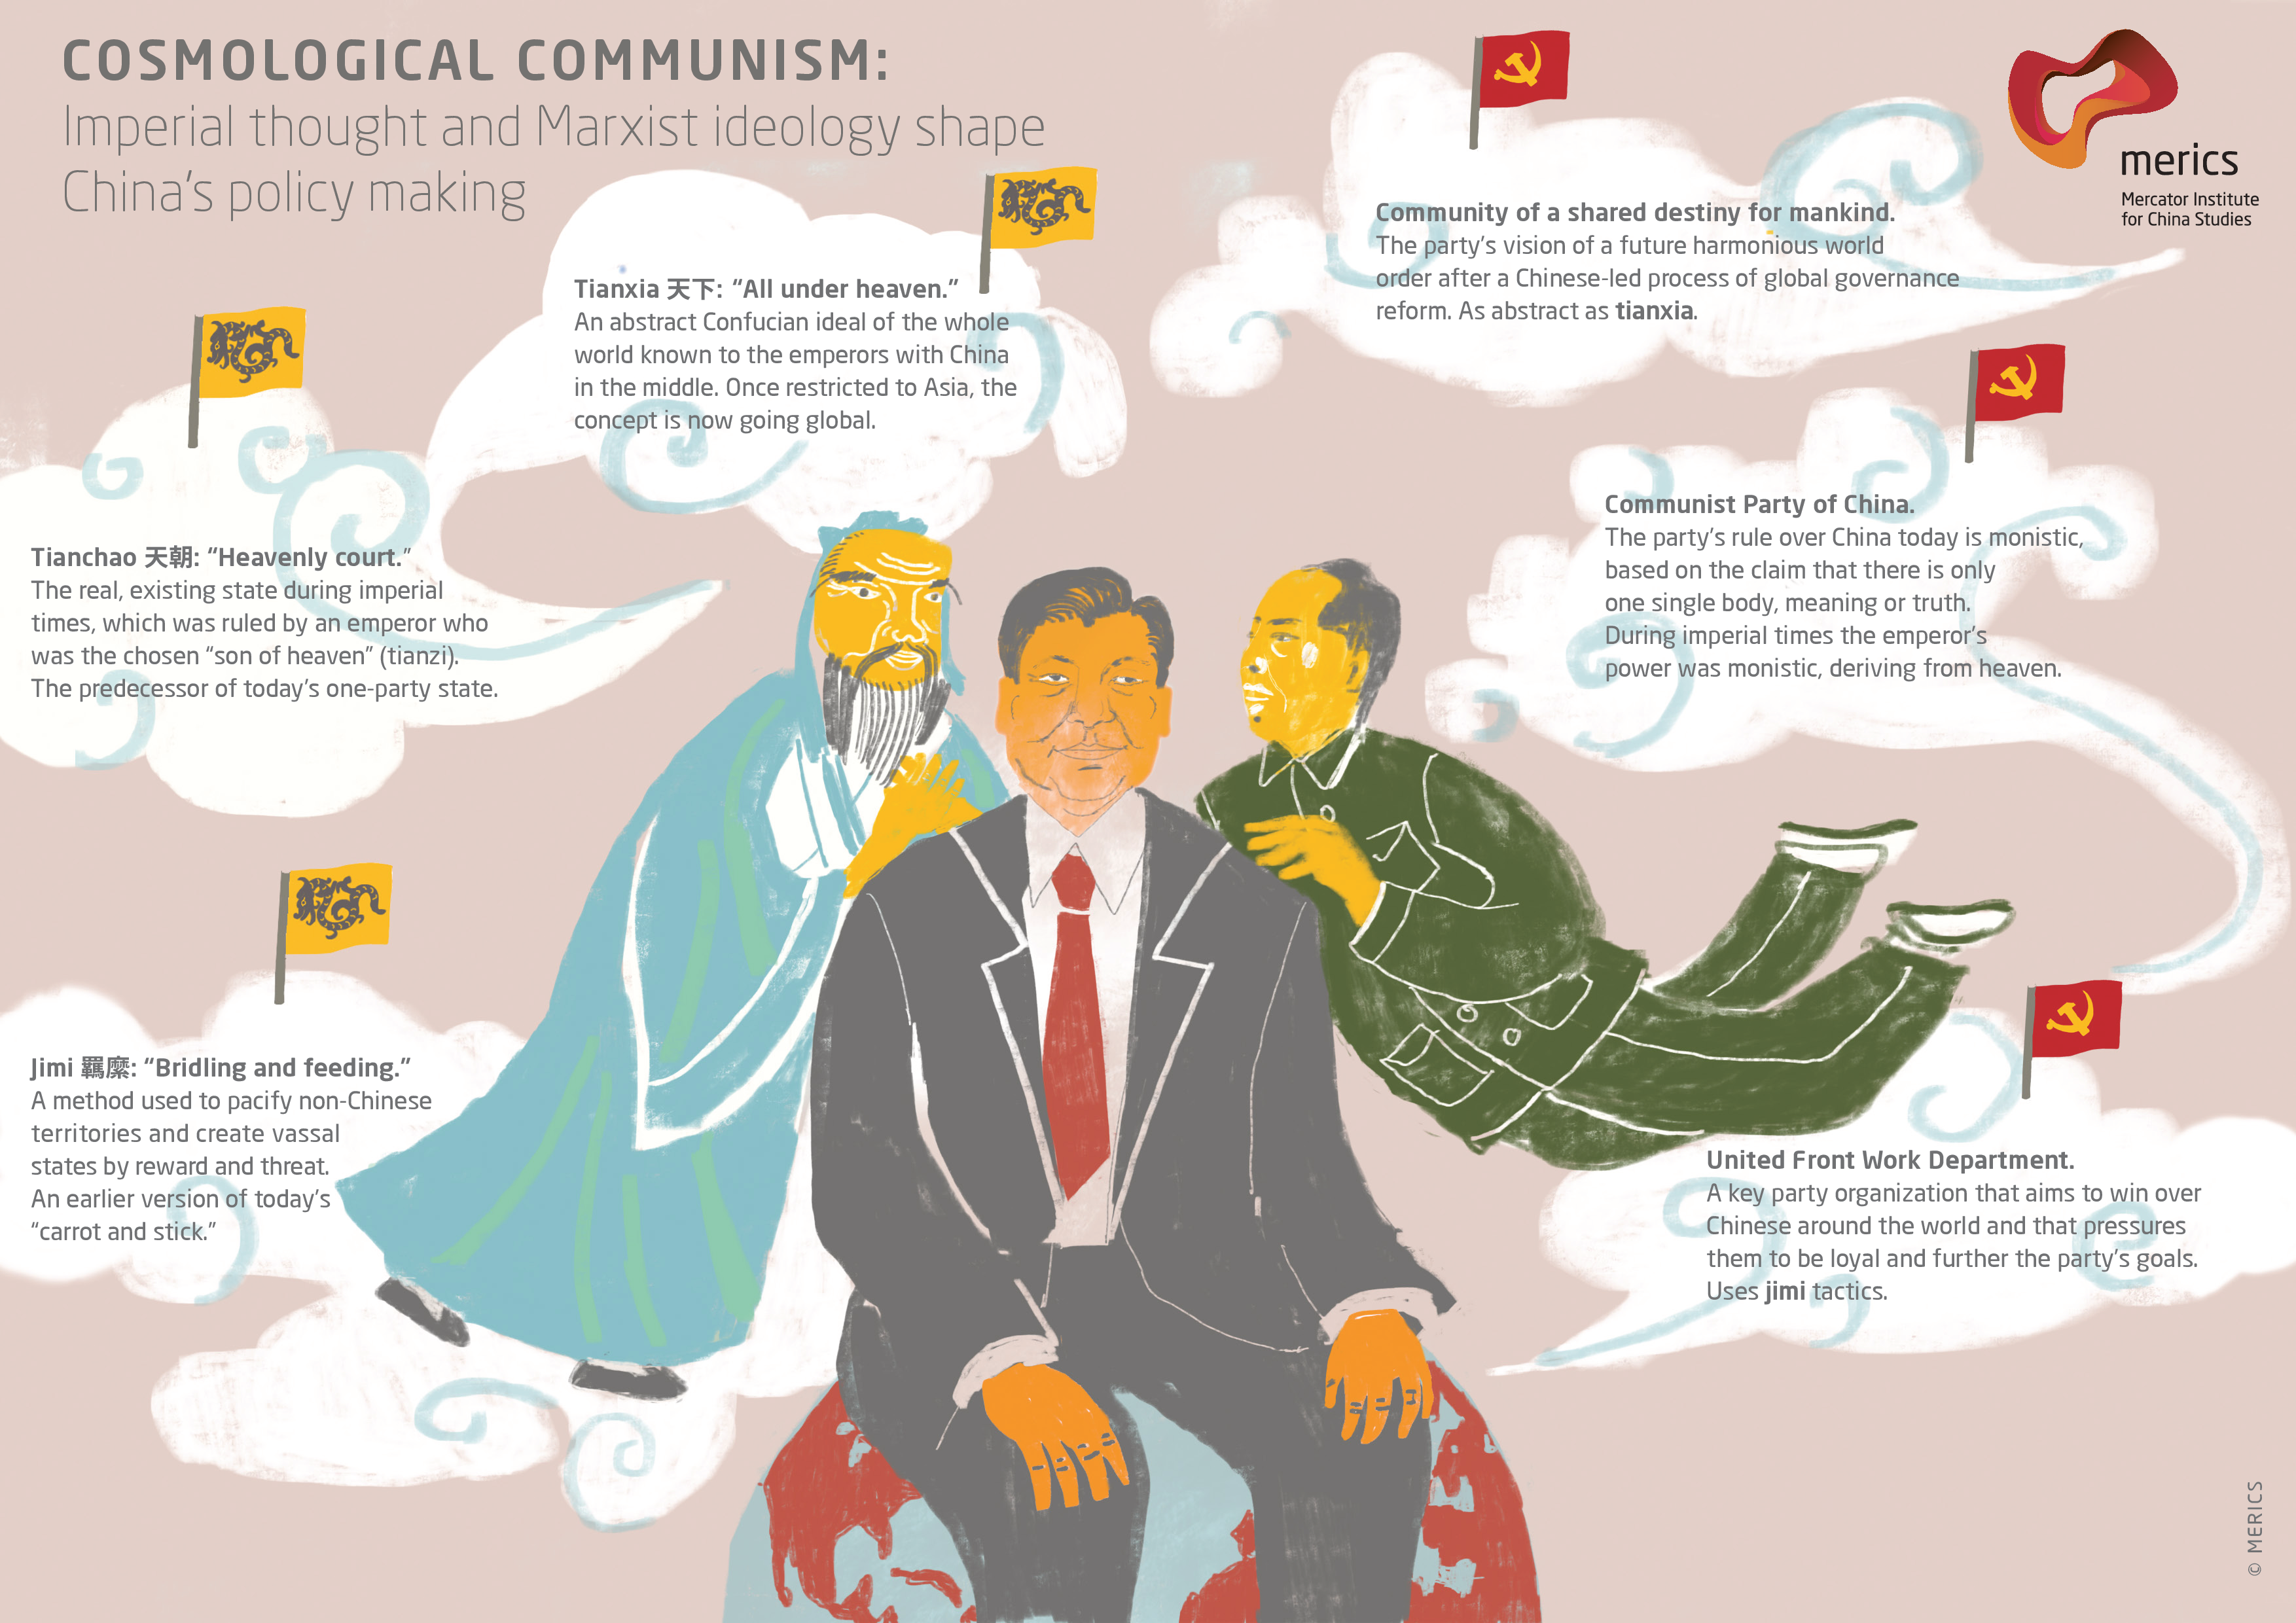 China S Cosmological Communism A Challenge To Liberal Democracies